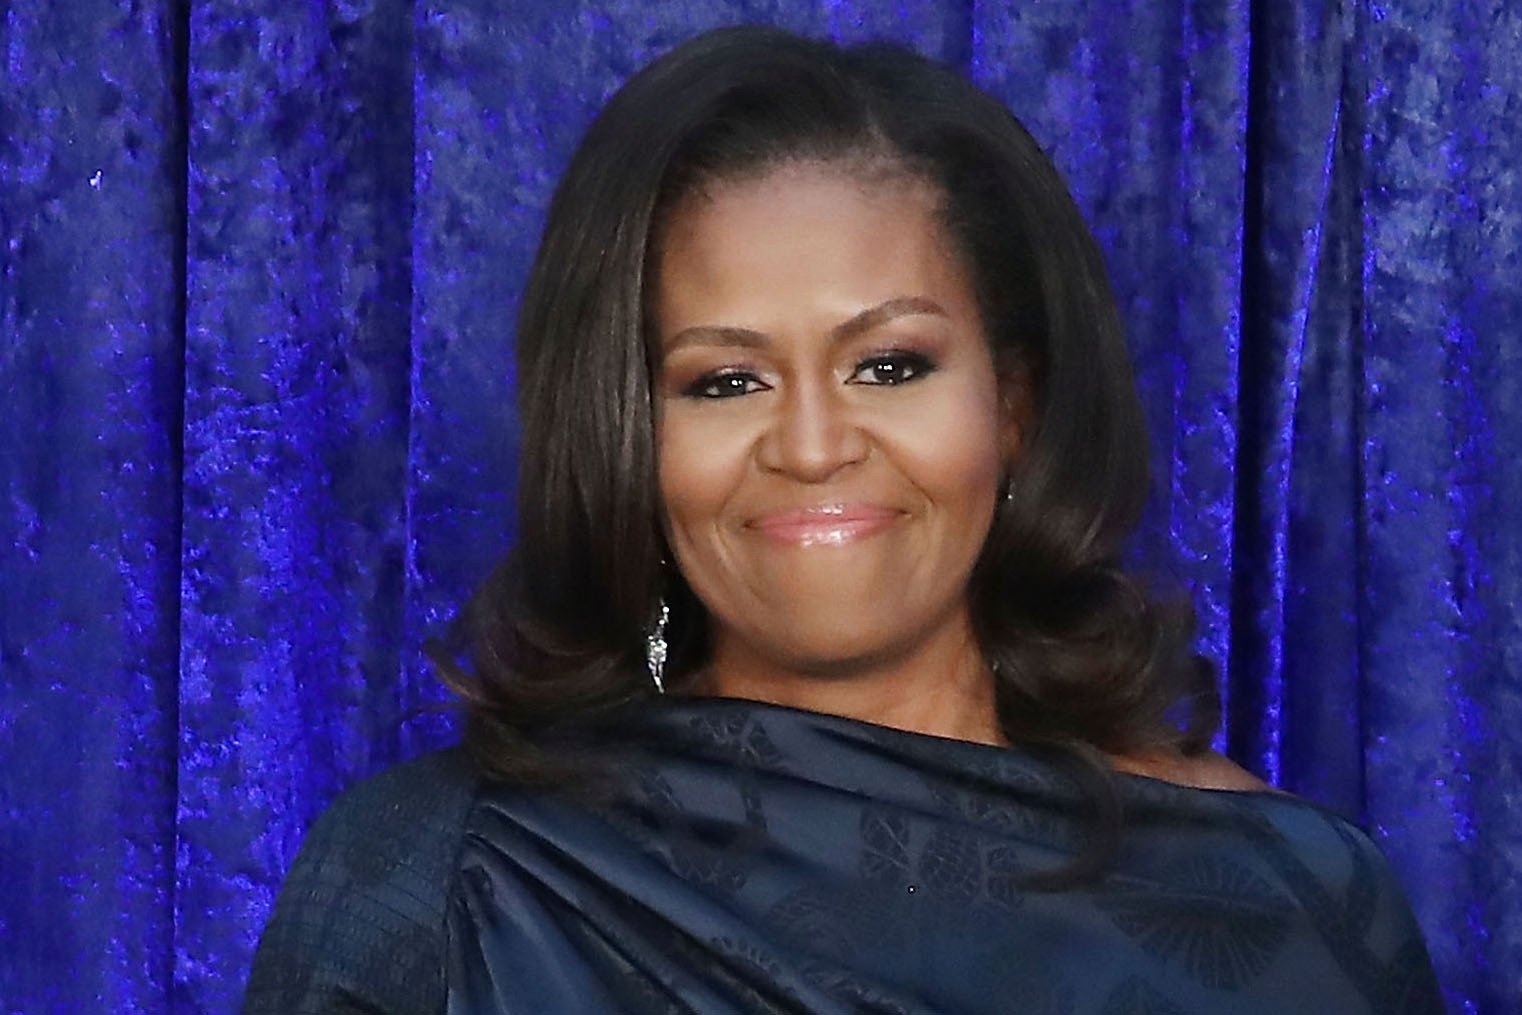 Former First Lady Michelle Obama is raking in ticket sales